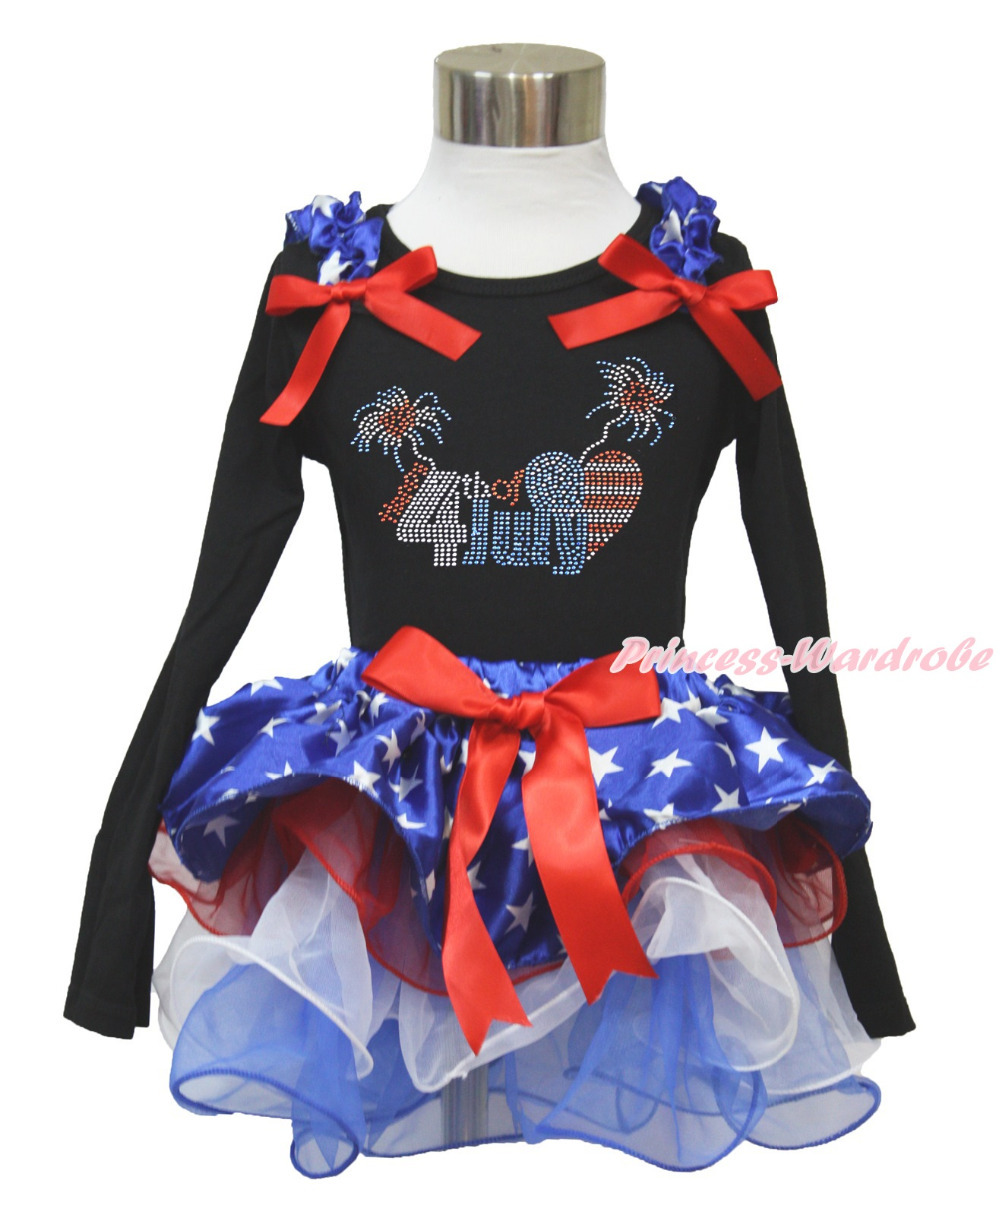 4th July Rhinestone Happy 4th July Black Long Sleeves Top Patriotic Star Red White Petal Pettiskirt NB-8Year MAMH231 happy star 88 5c m 34 39 red